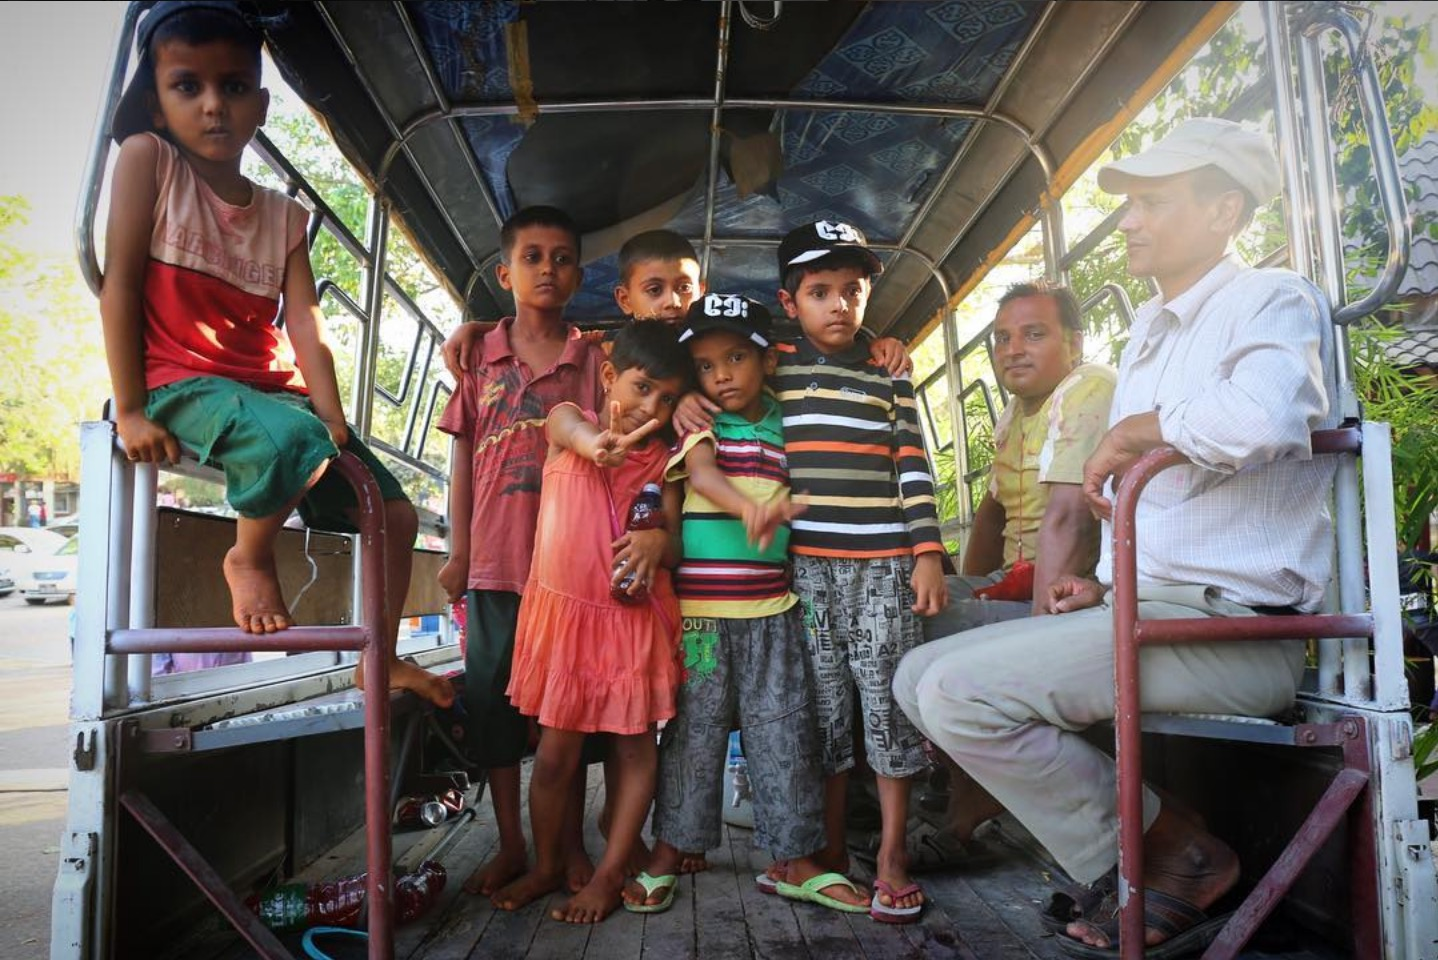 There's no one better to practice Myanmar language with than a bus full of kids. Kandawgyi Lake, Yangon. March 2017.